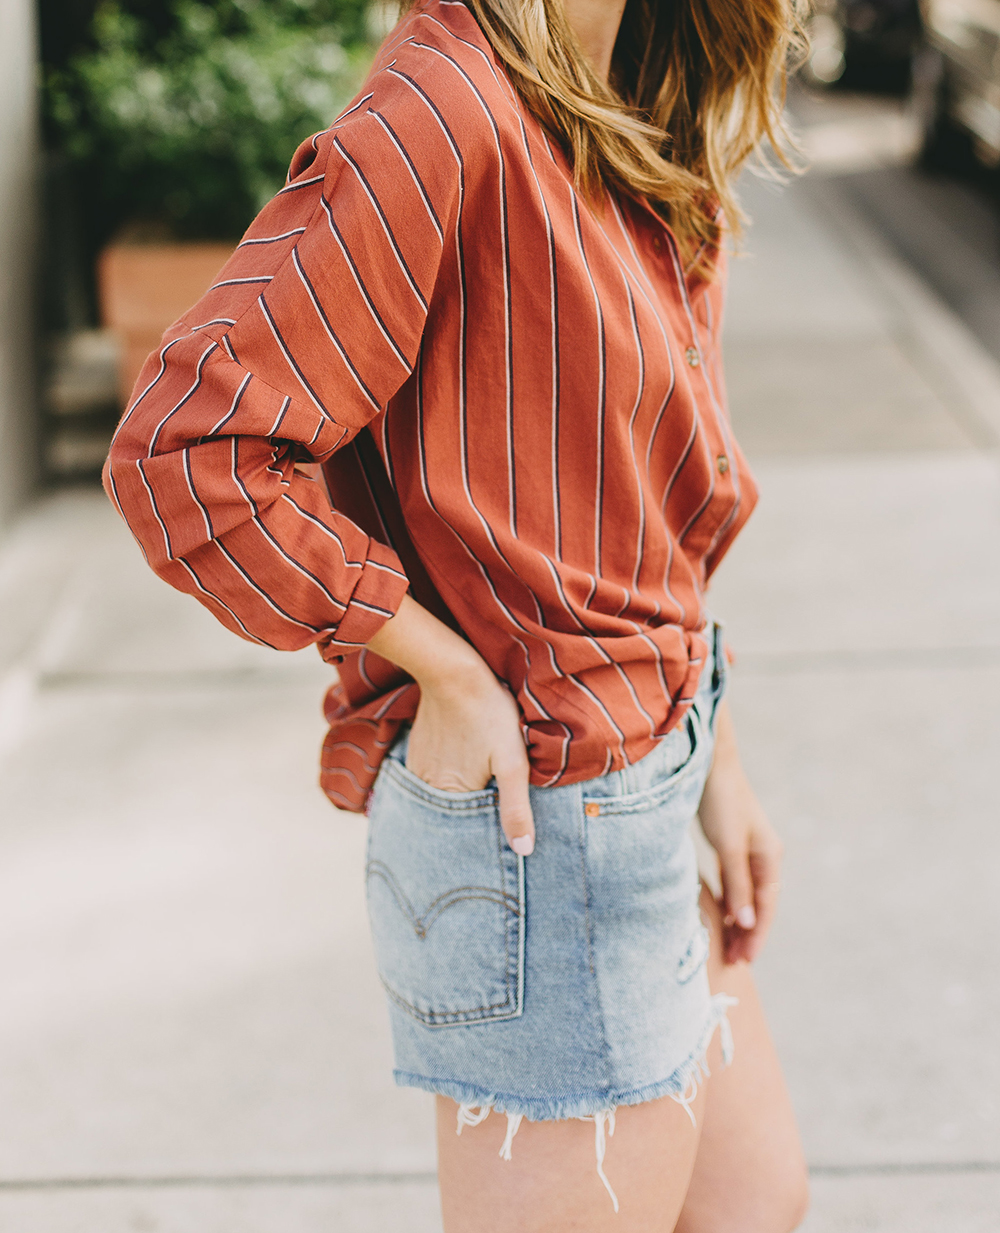 livvyland-blog-olivia-watson-austin-texas-fashion-style-blogger-urban-outfitters-levis-denim-wedgie-short-out-the-blue-brixton-straw-case-fedora-5